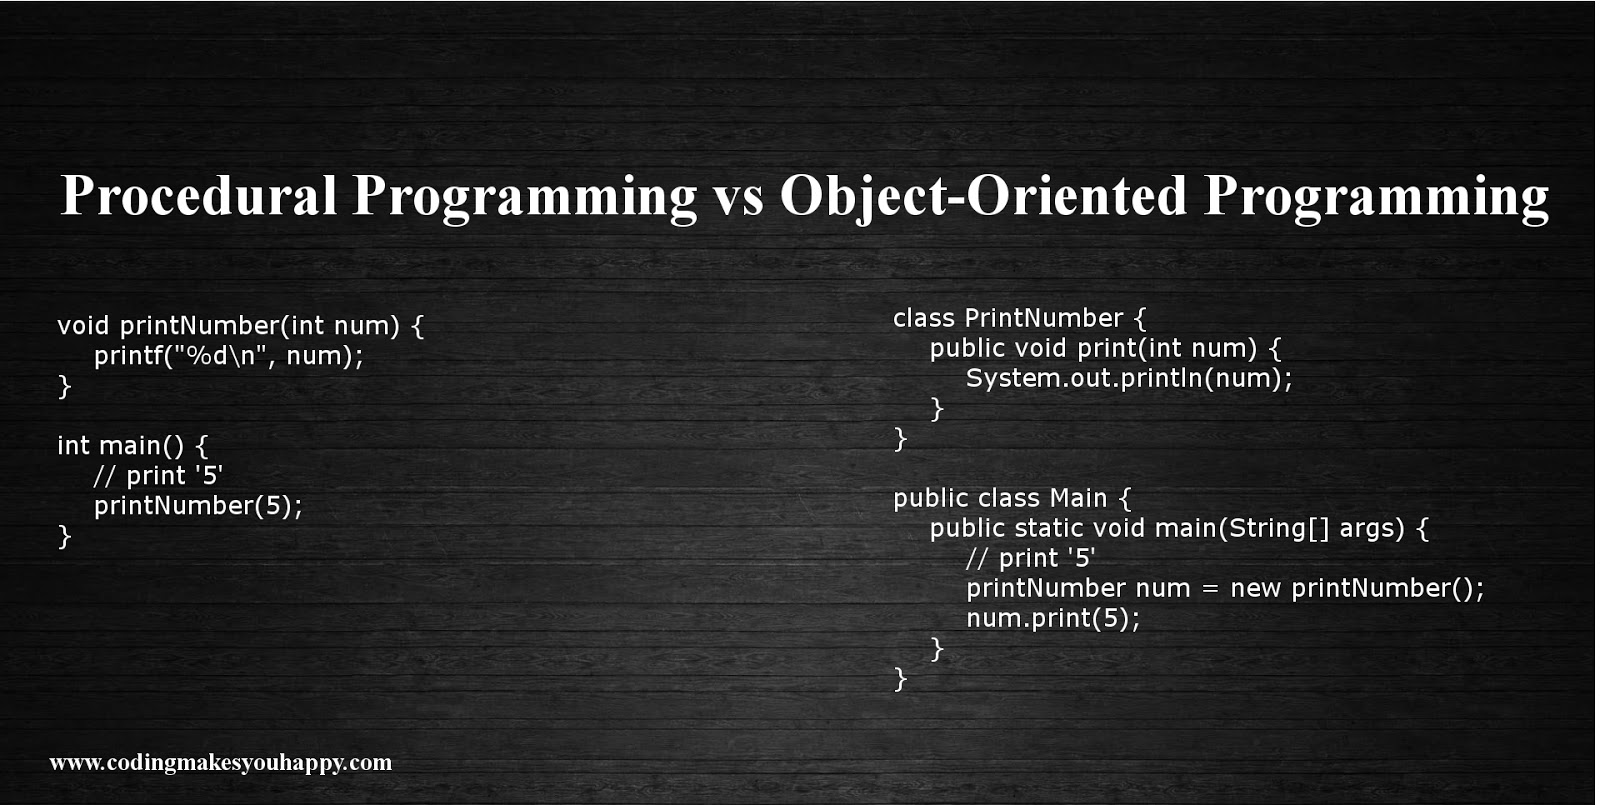 procedural programming Procedural programming online course - technology and computer science, high school, middle school for grades 7,8,9,10,11,12 | online virtual class & course curriculum by shmoop.